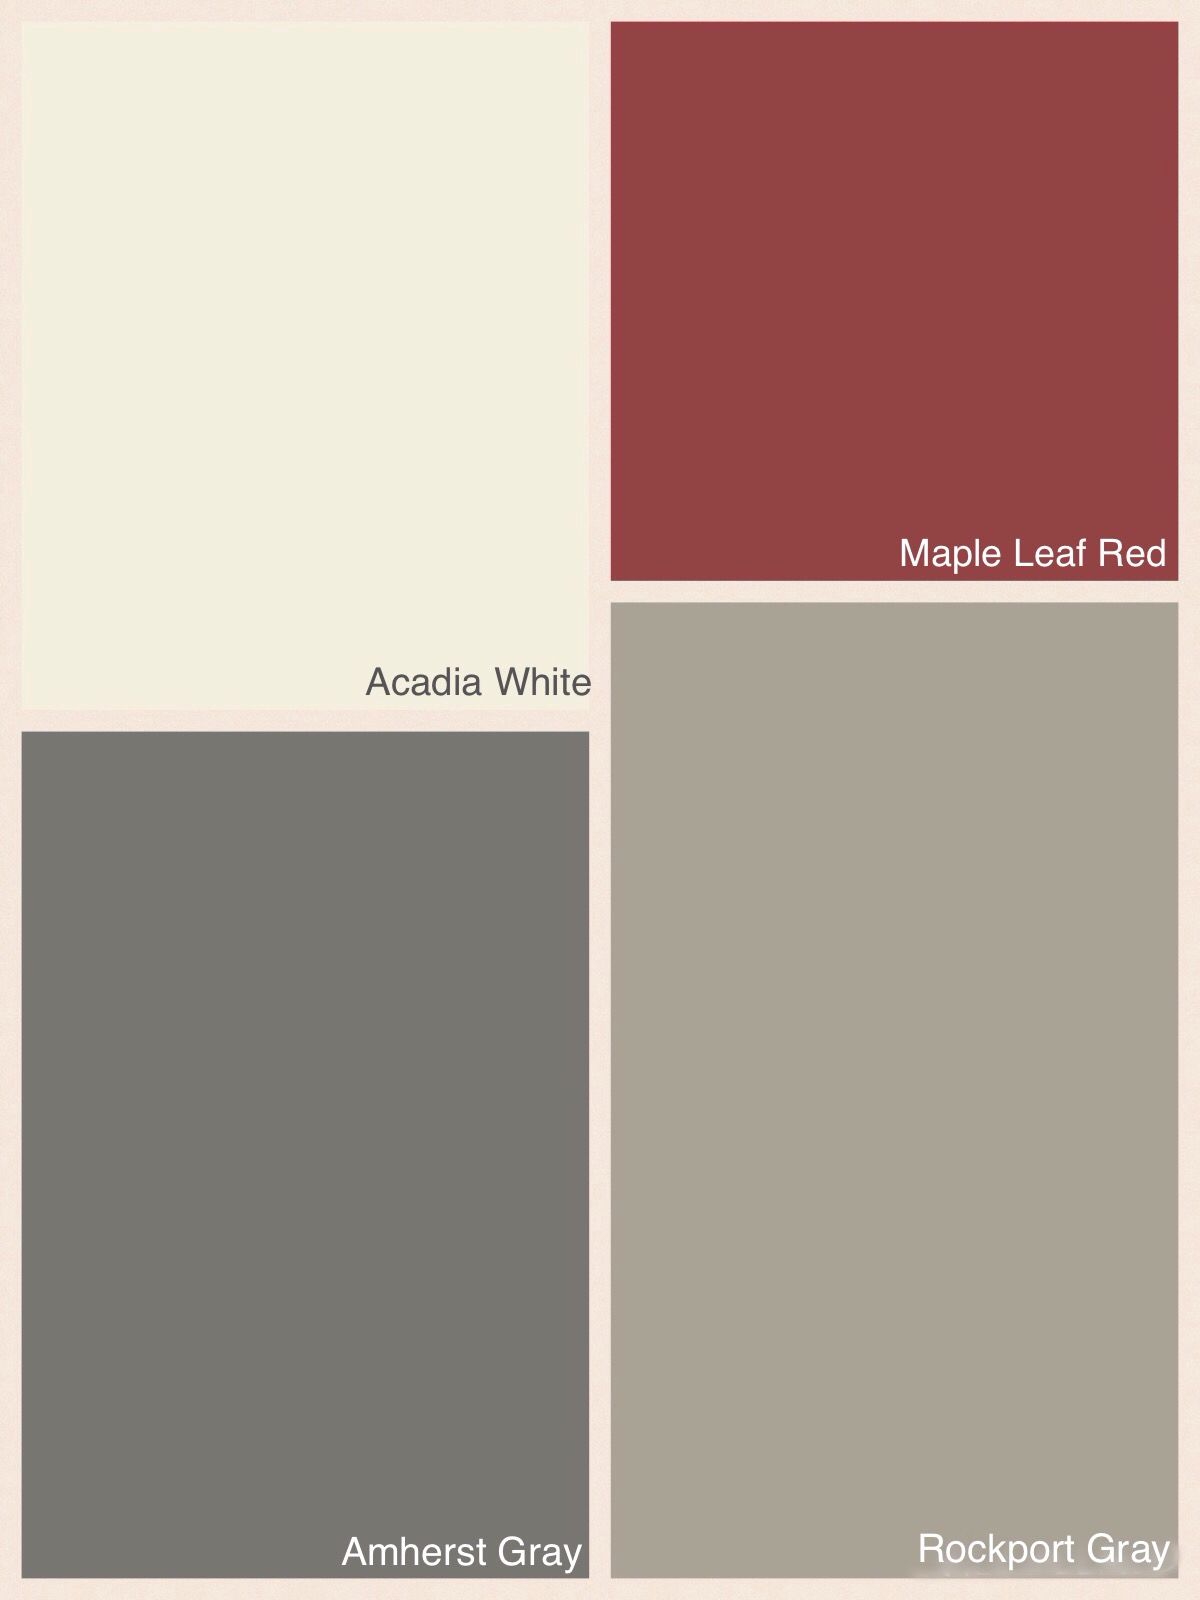 Benjamin moore rockport gray exterior paint home painting Color combinations painting